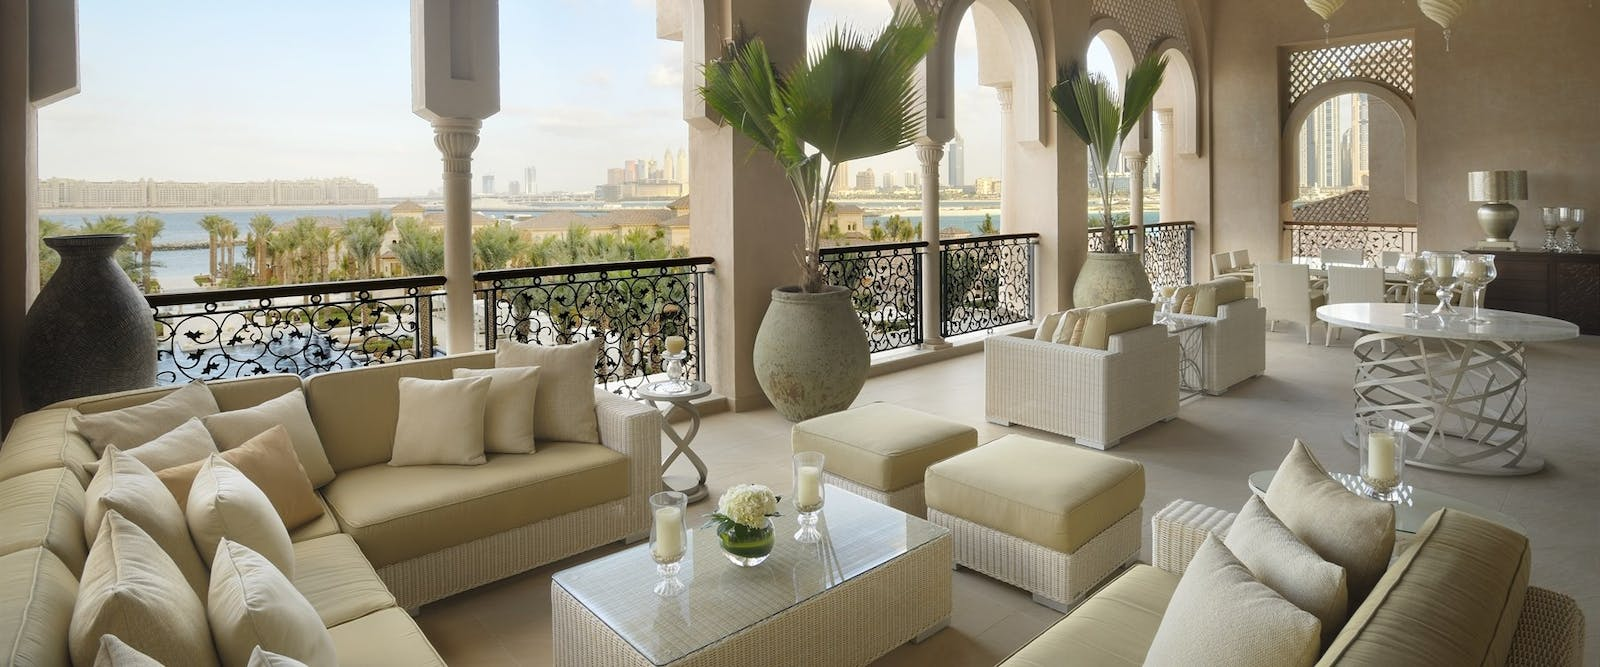 Grand Palm Suite Terrace at One&Only The Palm, Dubai